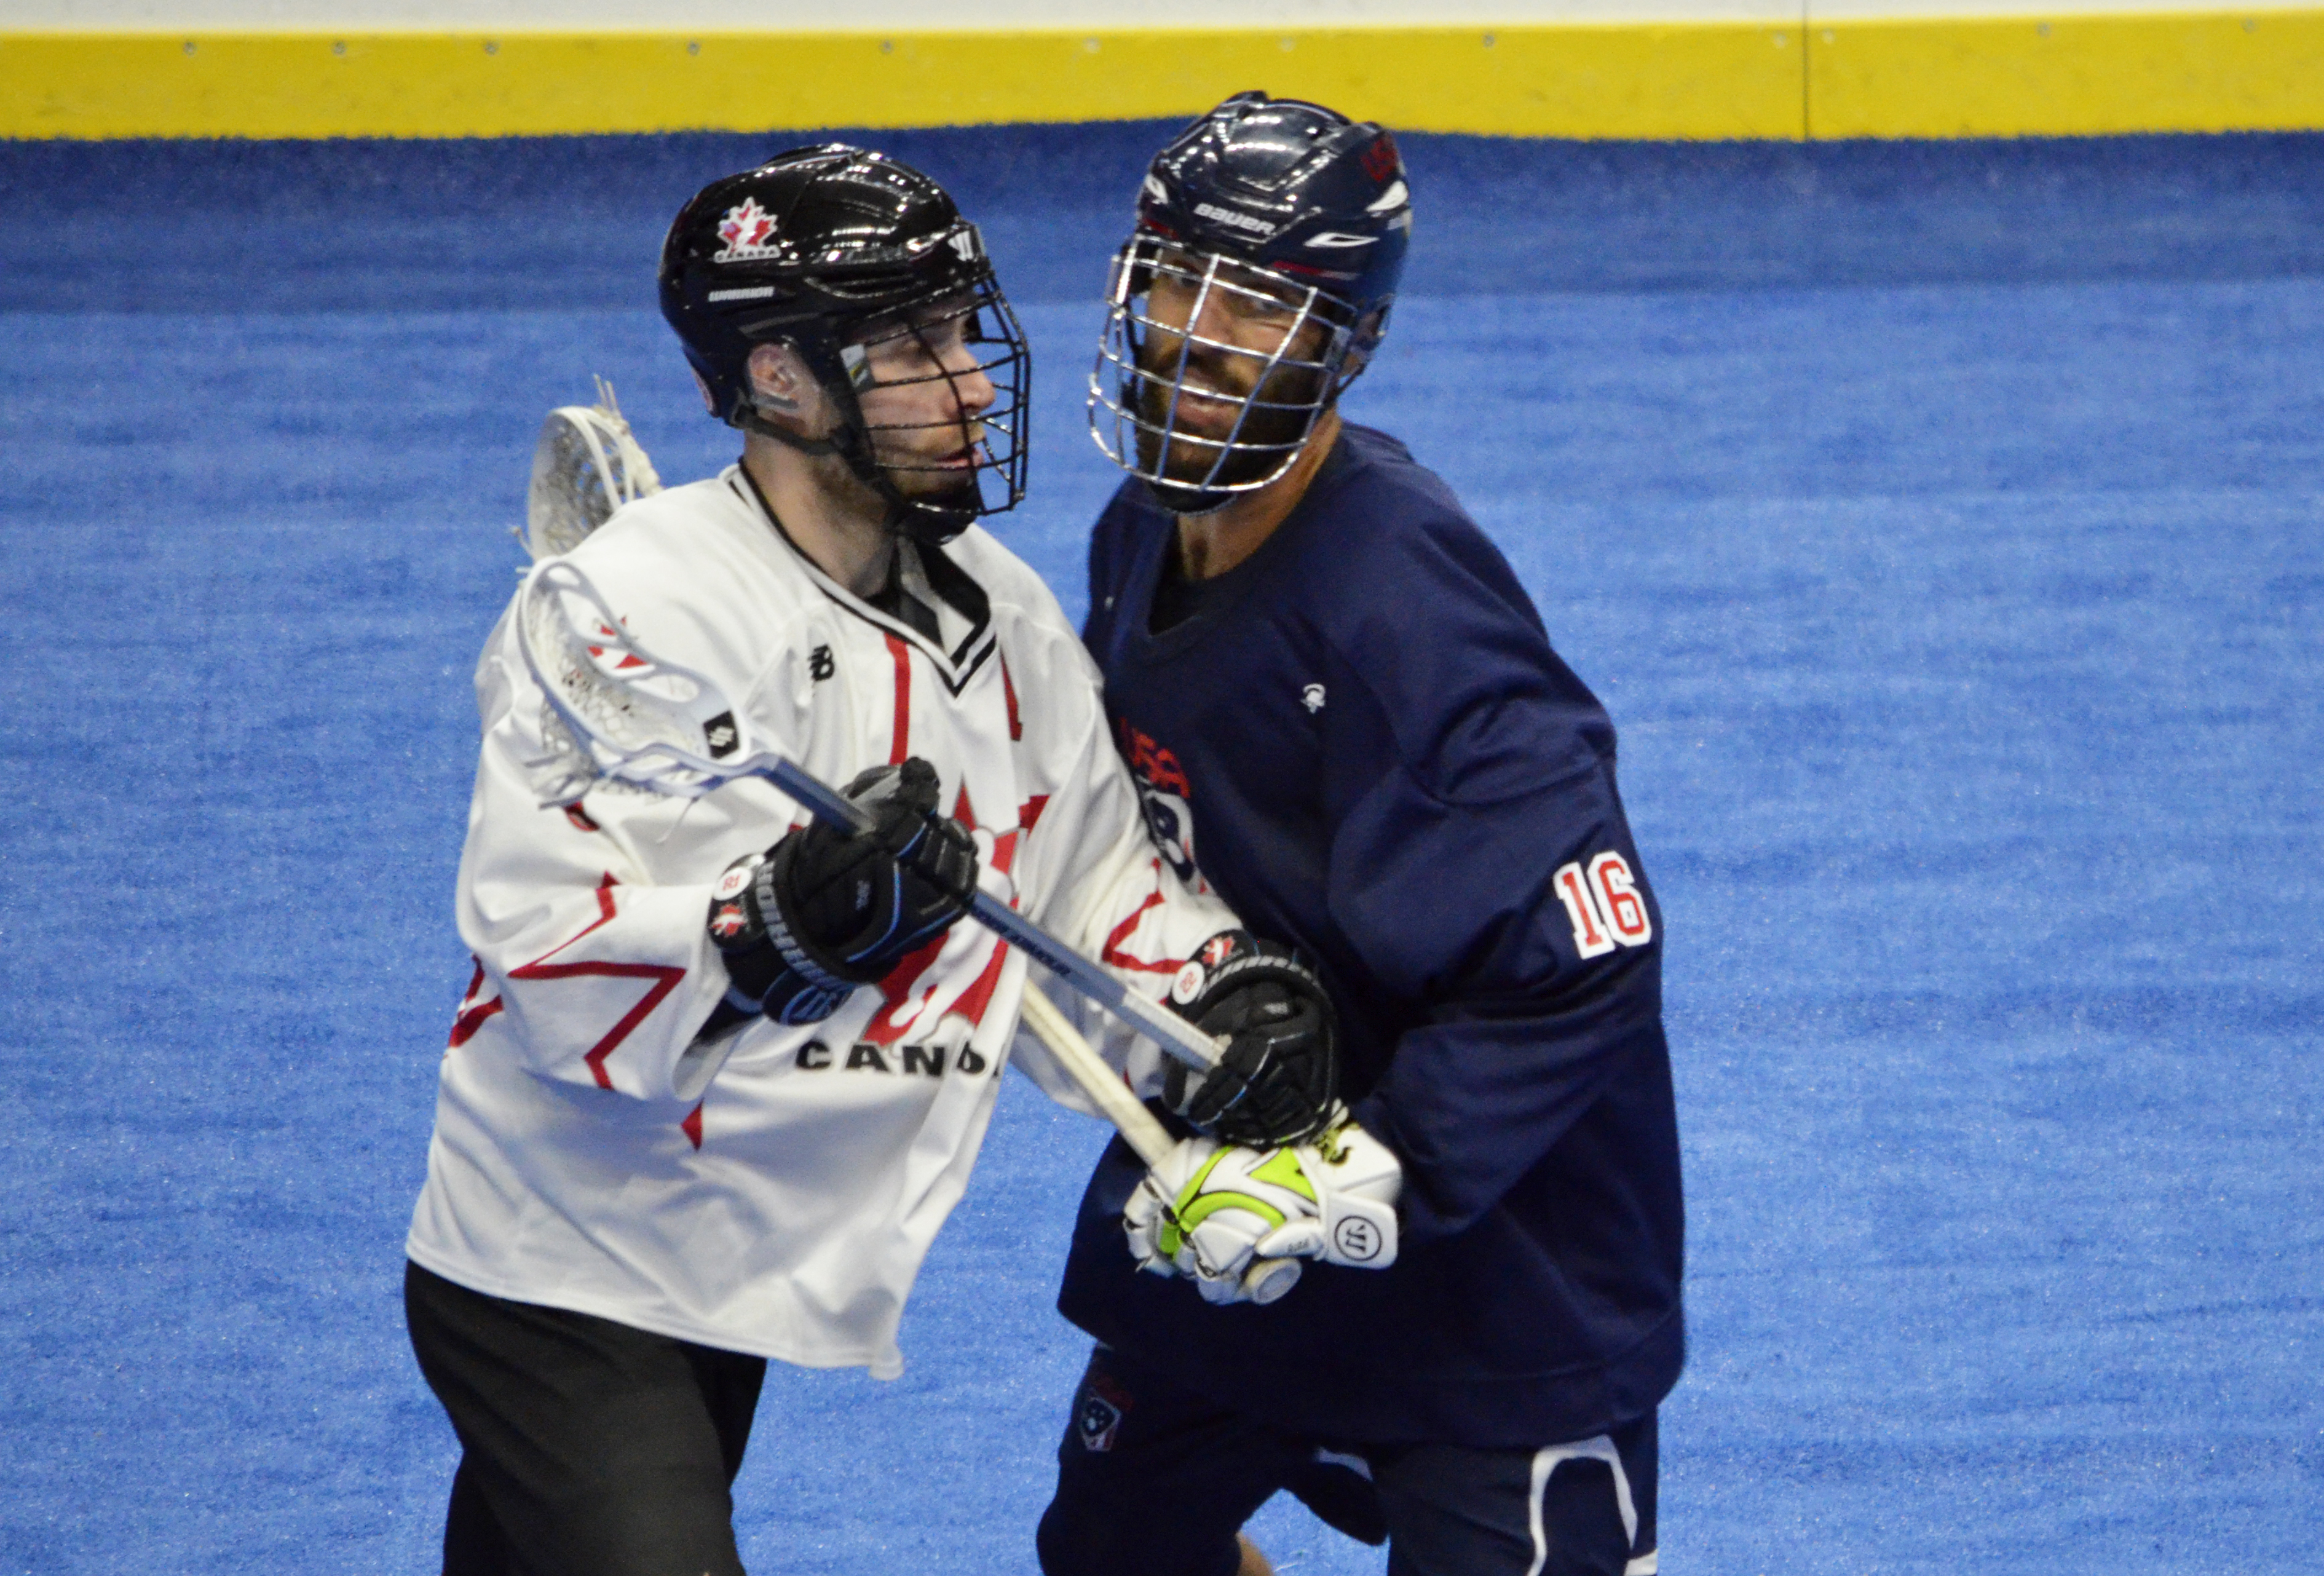 Paul Rabil of Team USA tries to get around Team Canada defender Ryan Dilks during the 2017 Heritage Cup in Hamilton, Ont. (Photo credit: Anna Taylor)